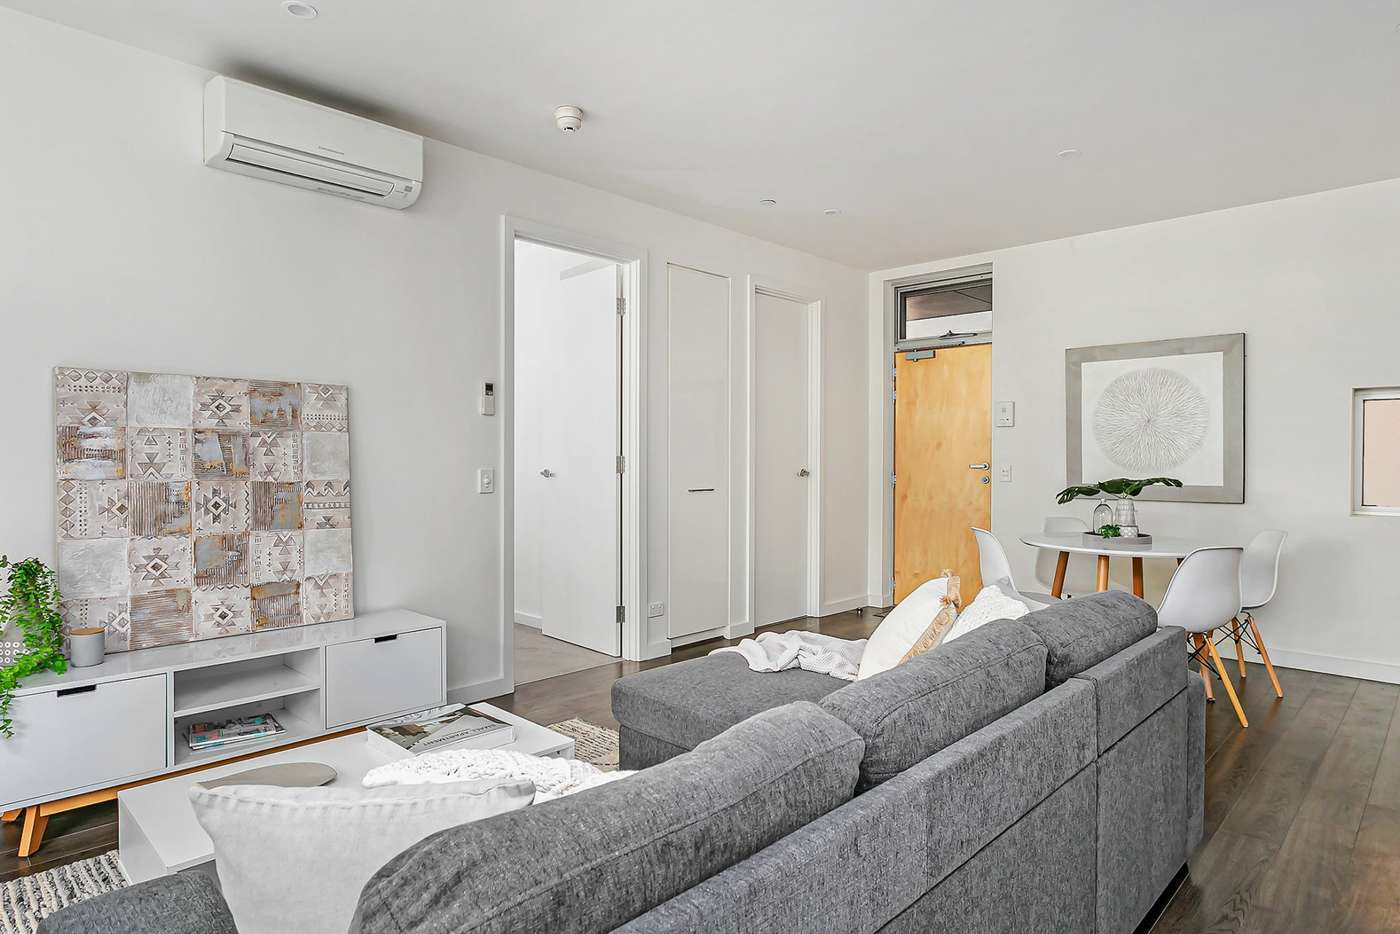 Sixth view of Homely apartment listing, G06/46 Sixth Street, Bowden SA 5007